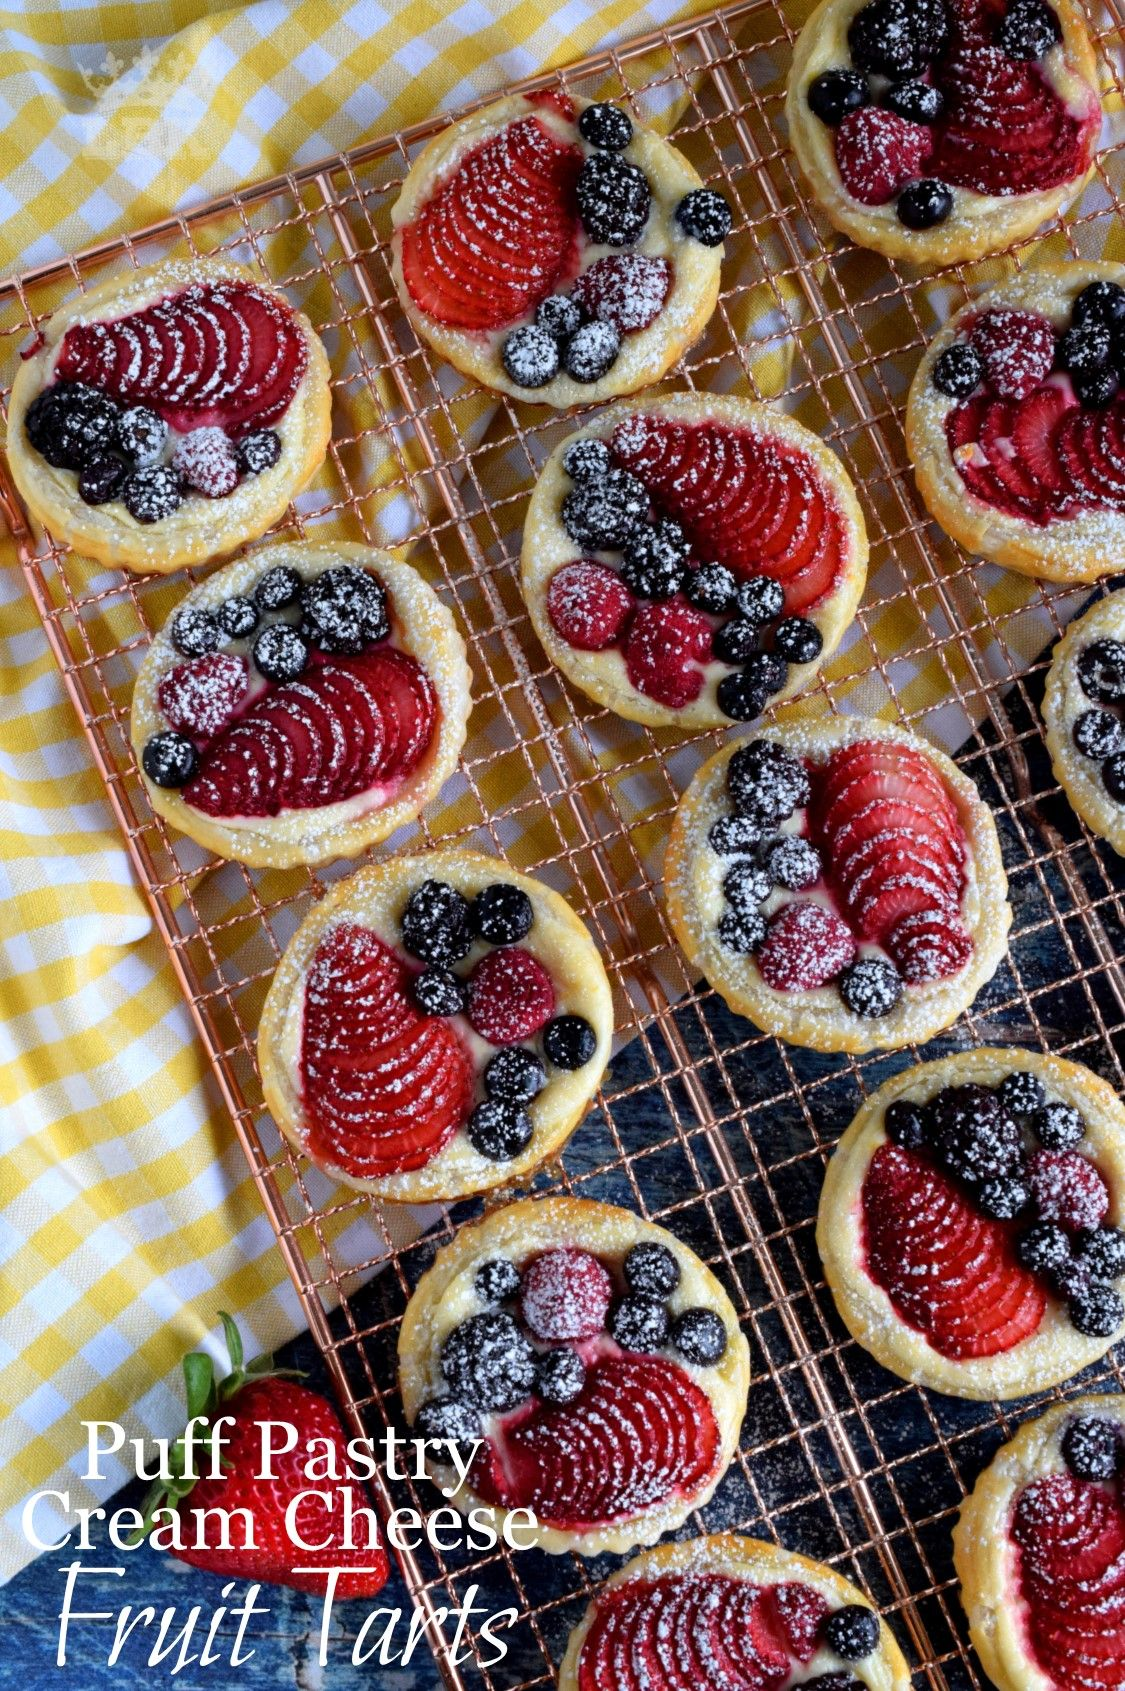 Puff Pastry Cream Cheese Fruit Tarts - Lord Byron's Kitchen